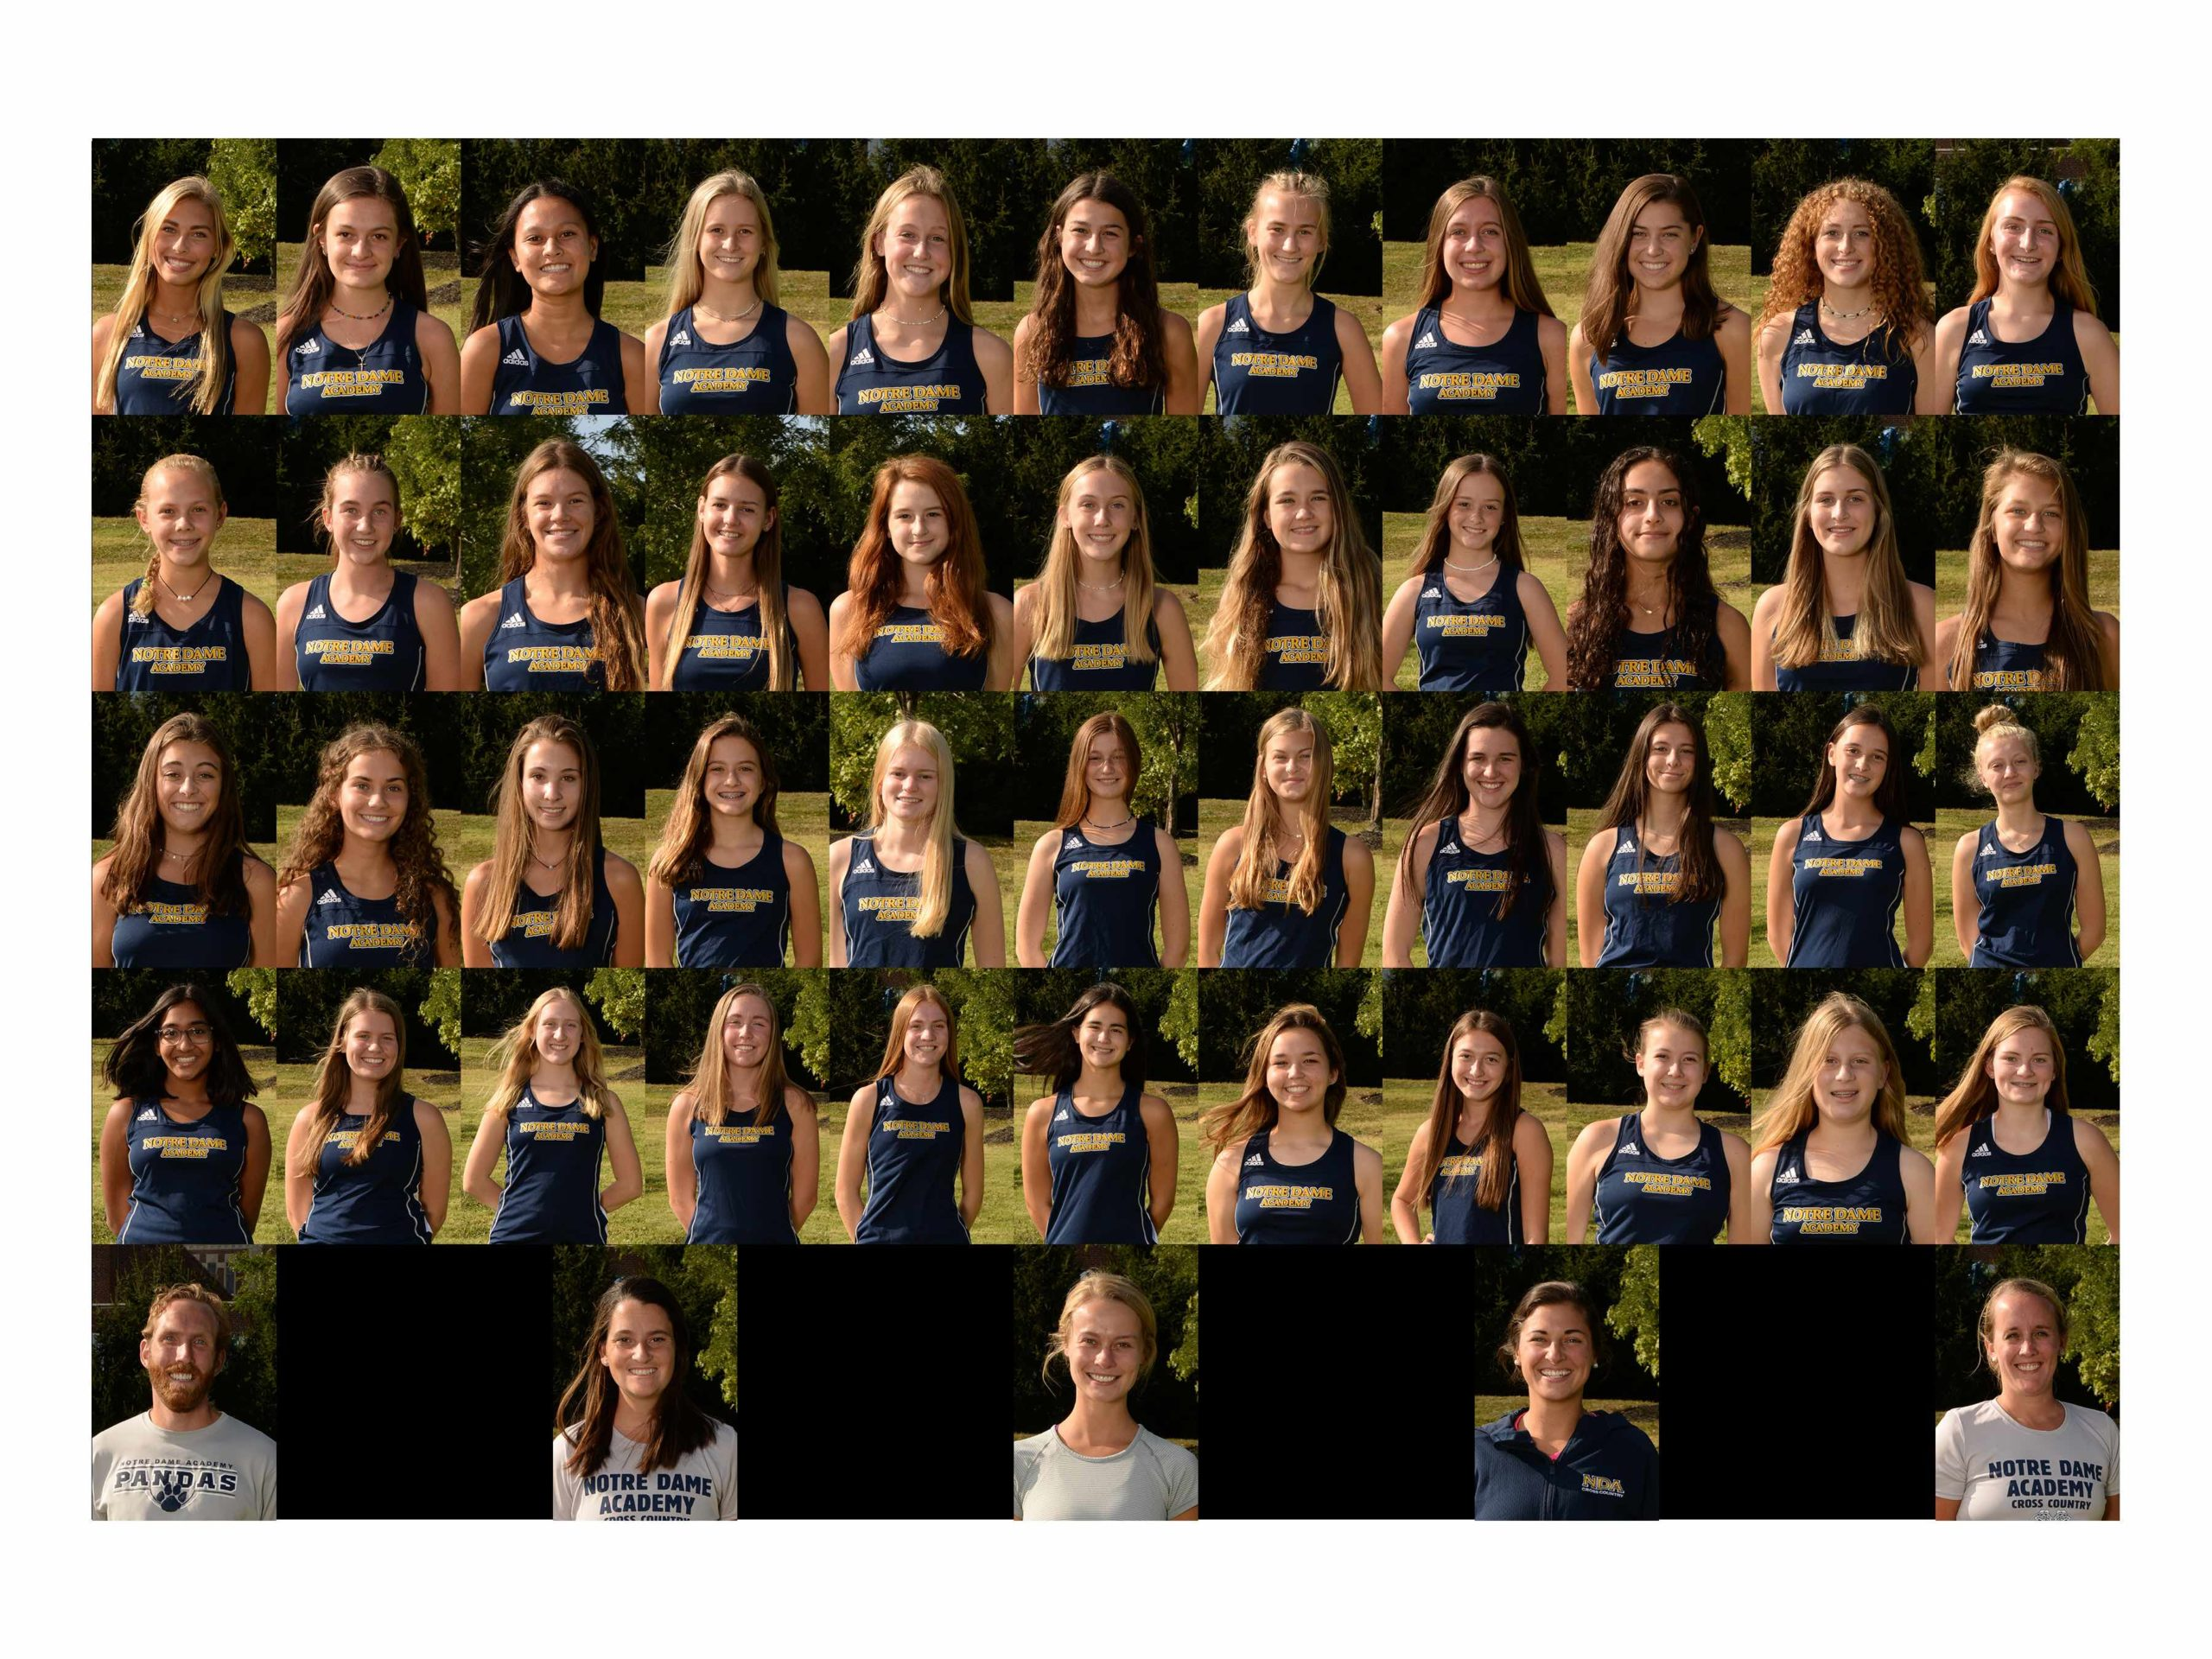 2020 Cross Country team photo, at the Notre Dame Academy catholic all-girls school in Covington, Northern Kentucky.